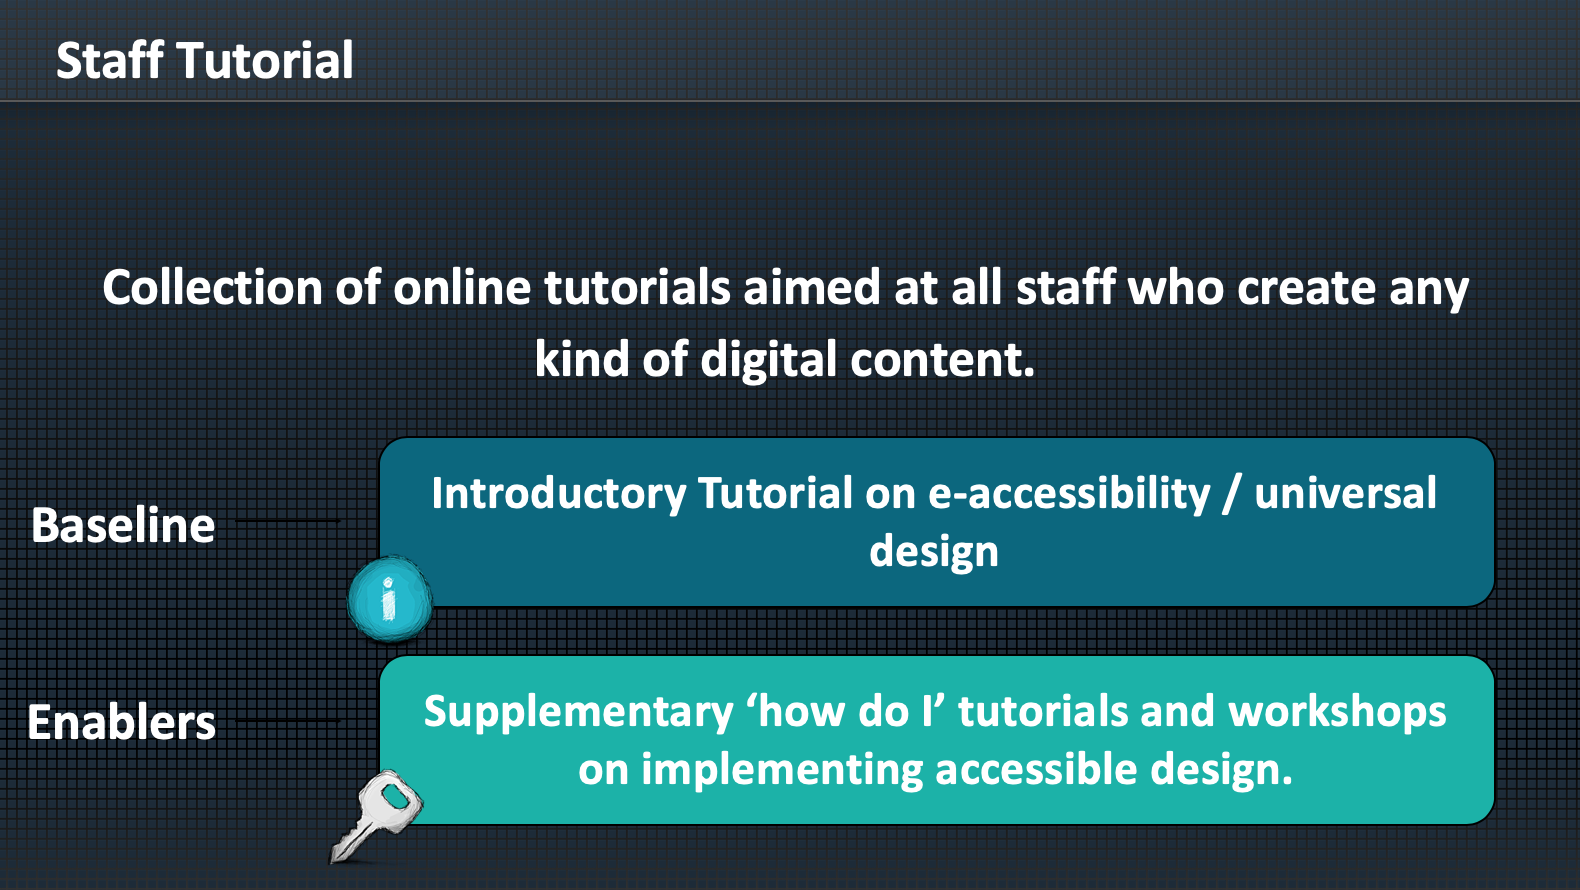 University of York staff accessibility tutorials framework outline